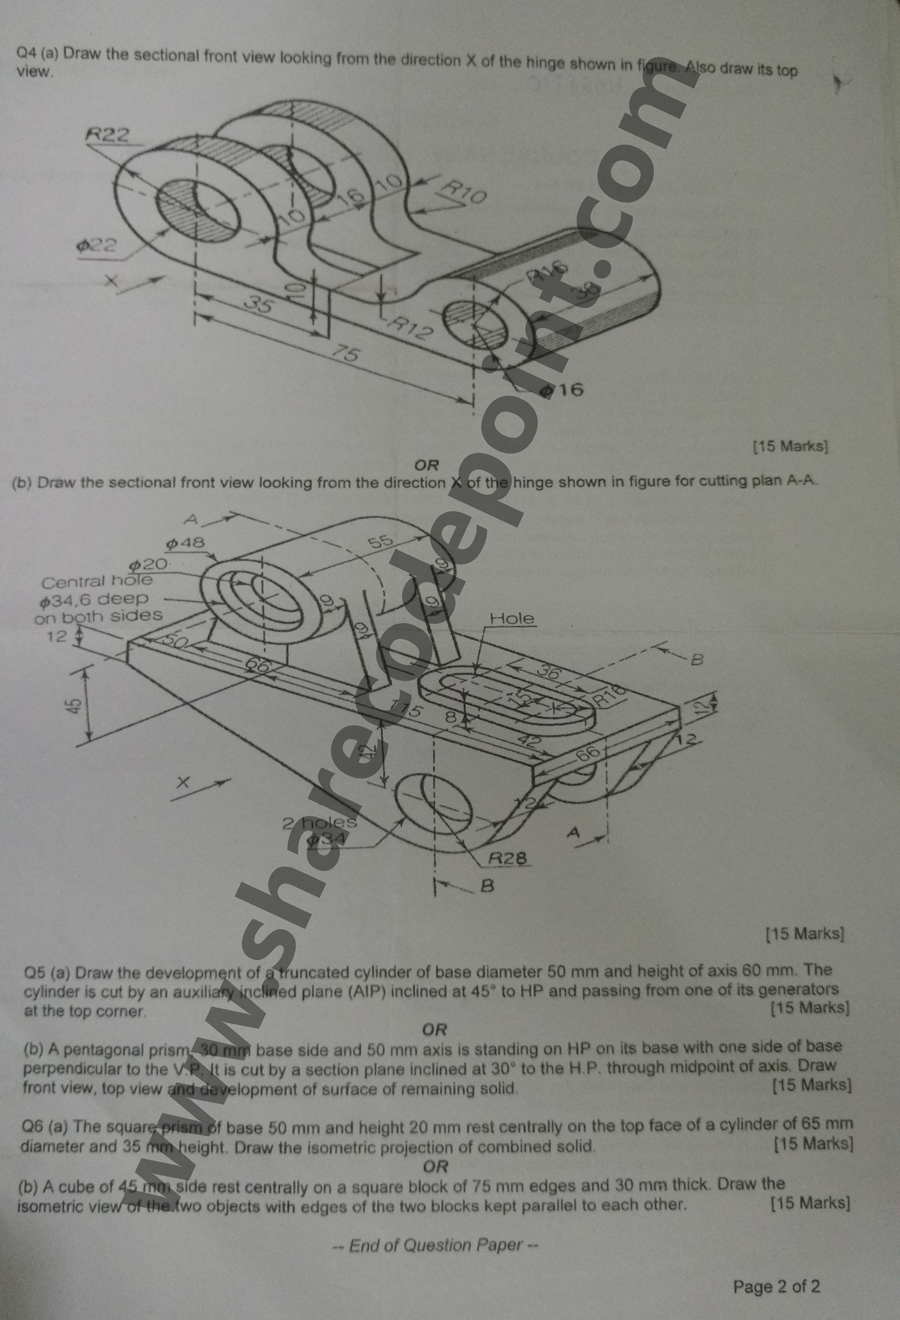 Mec103 engineering graphics end term exam question paper mec 103 technical drawing is used to fully and clearly define requirements for engineered items engineering drawing produces engineering drawings wikipedia malvernweather Choice Image